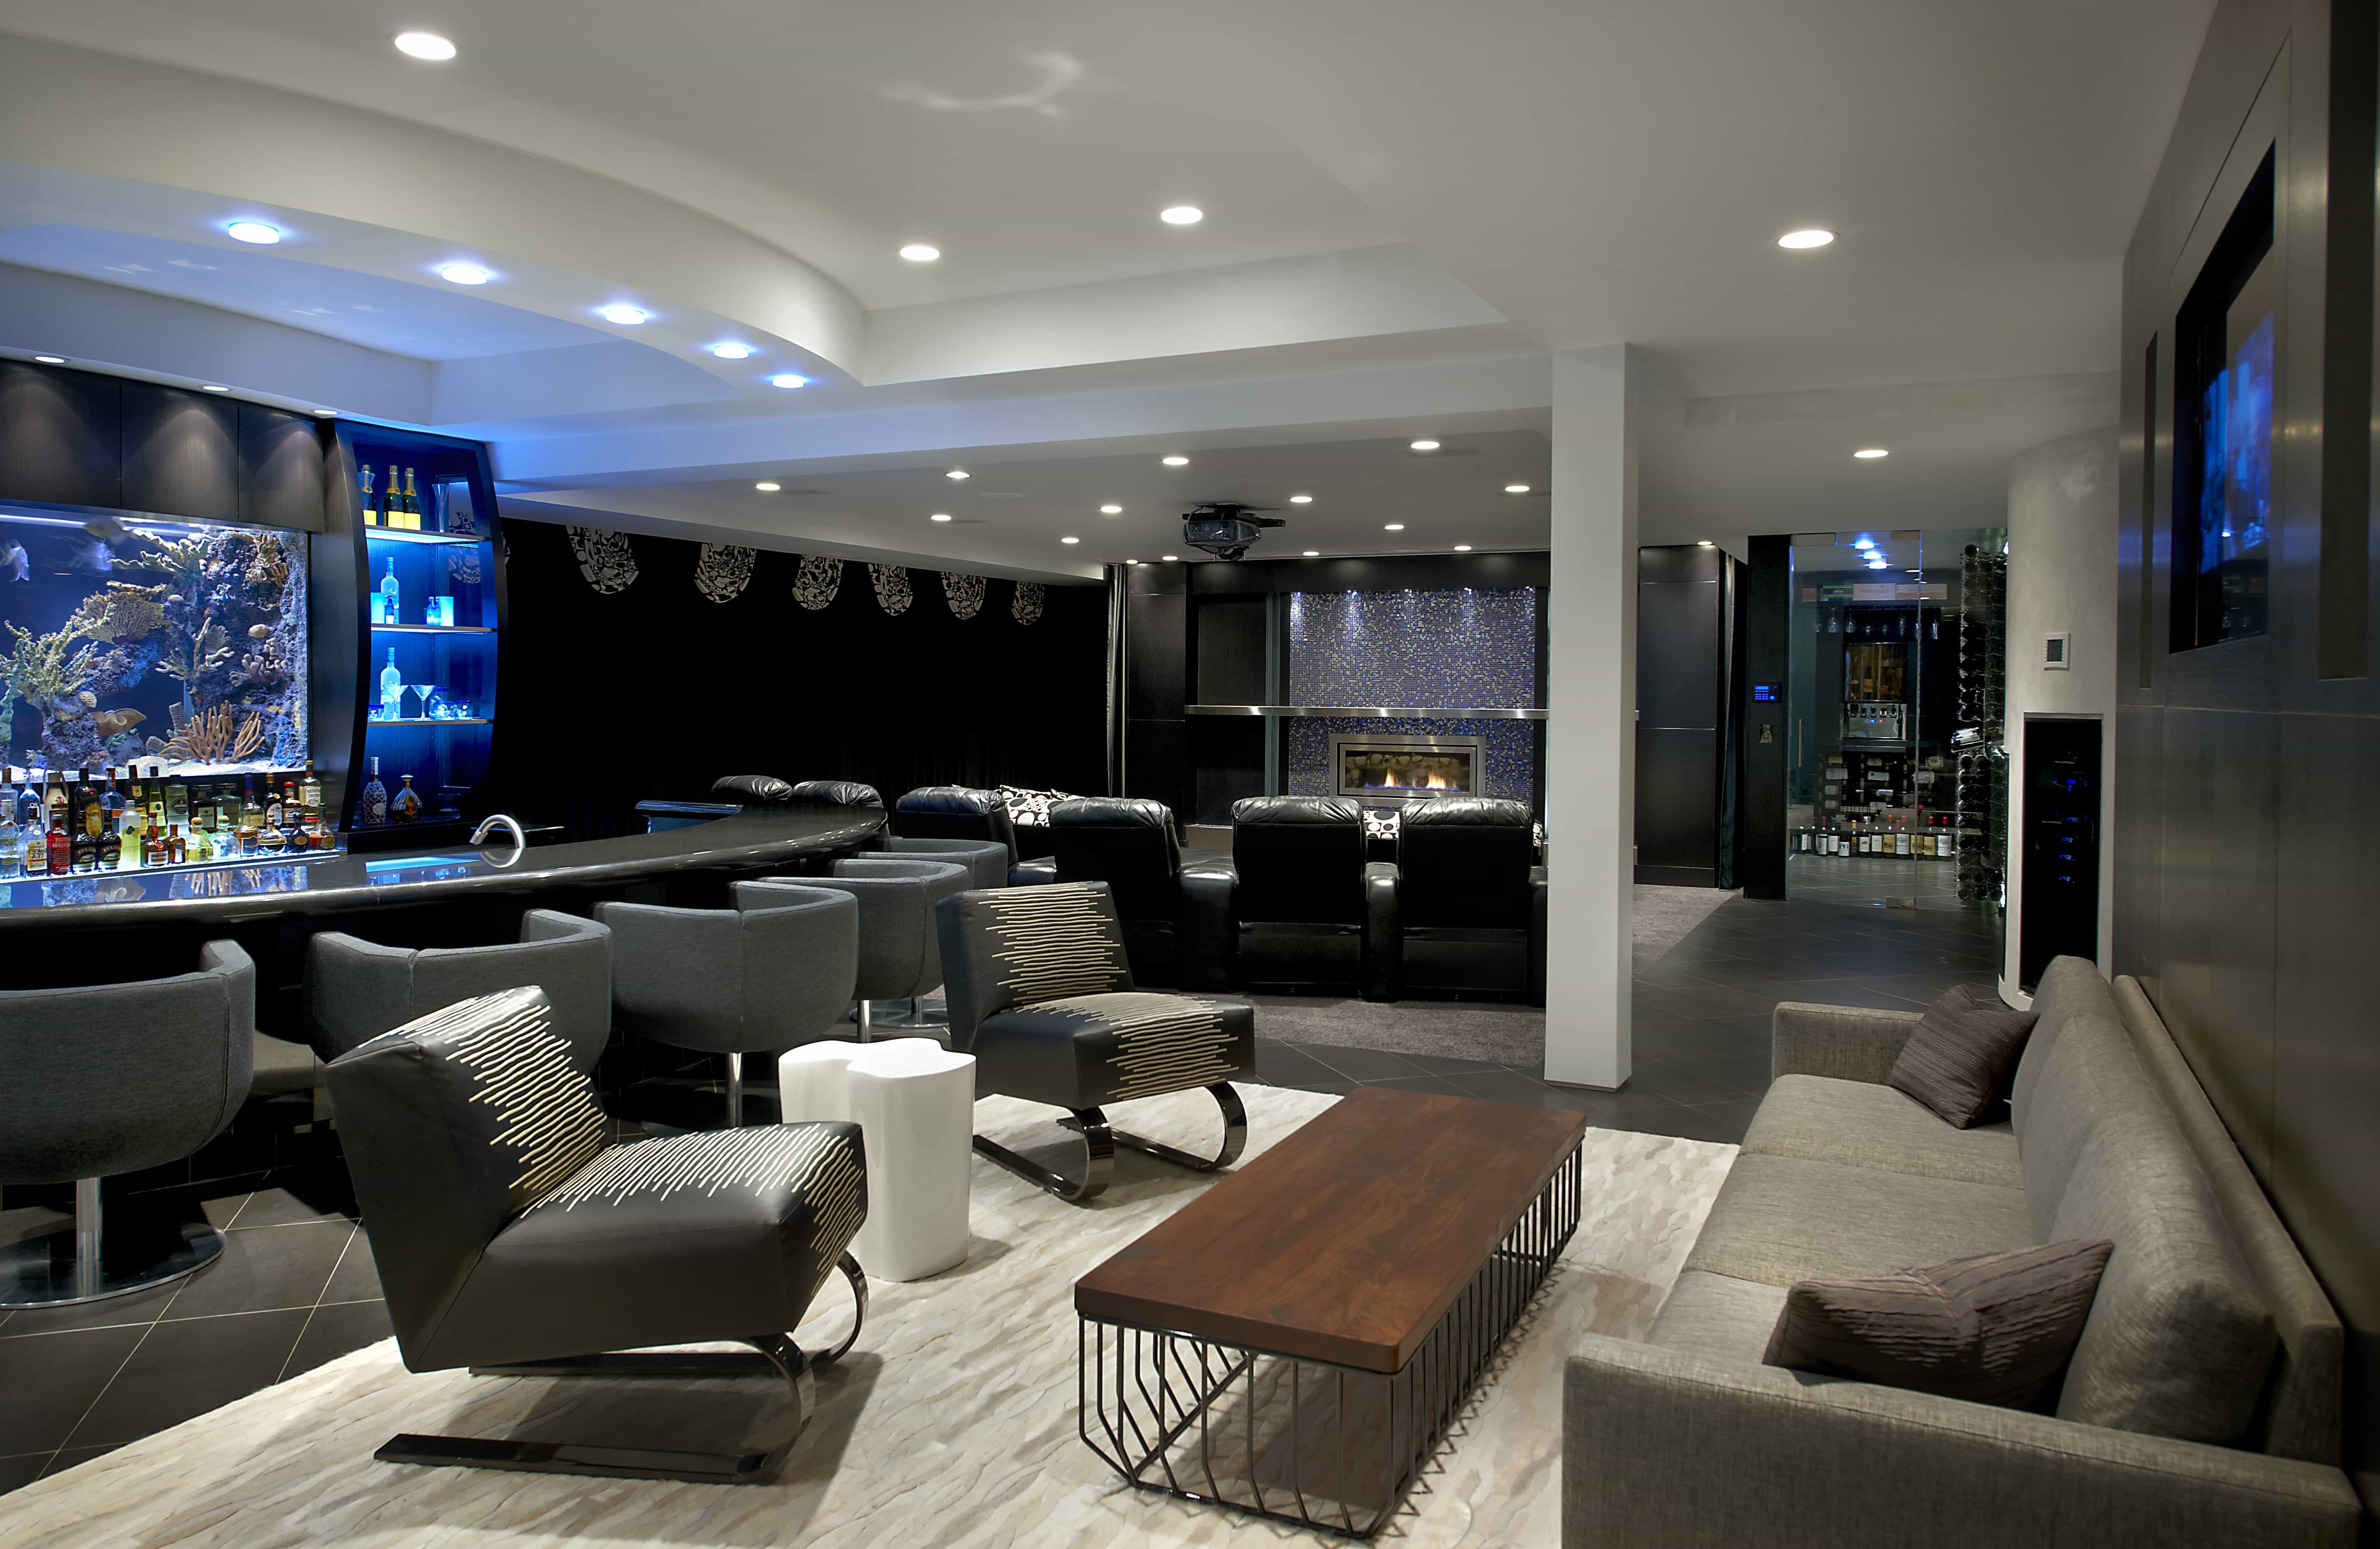 Contemporary Lounge With Bar And Home Theater (Image 5 of 21)